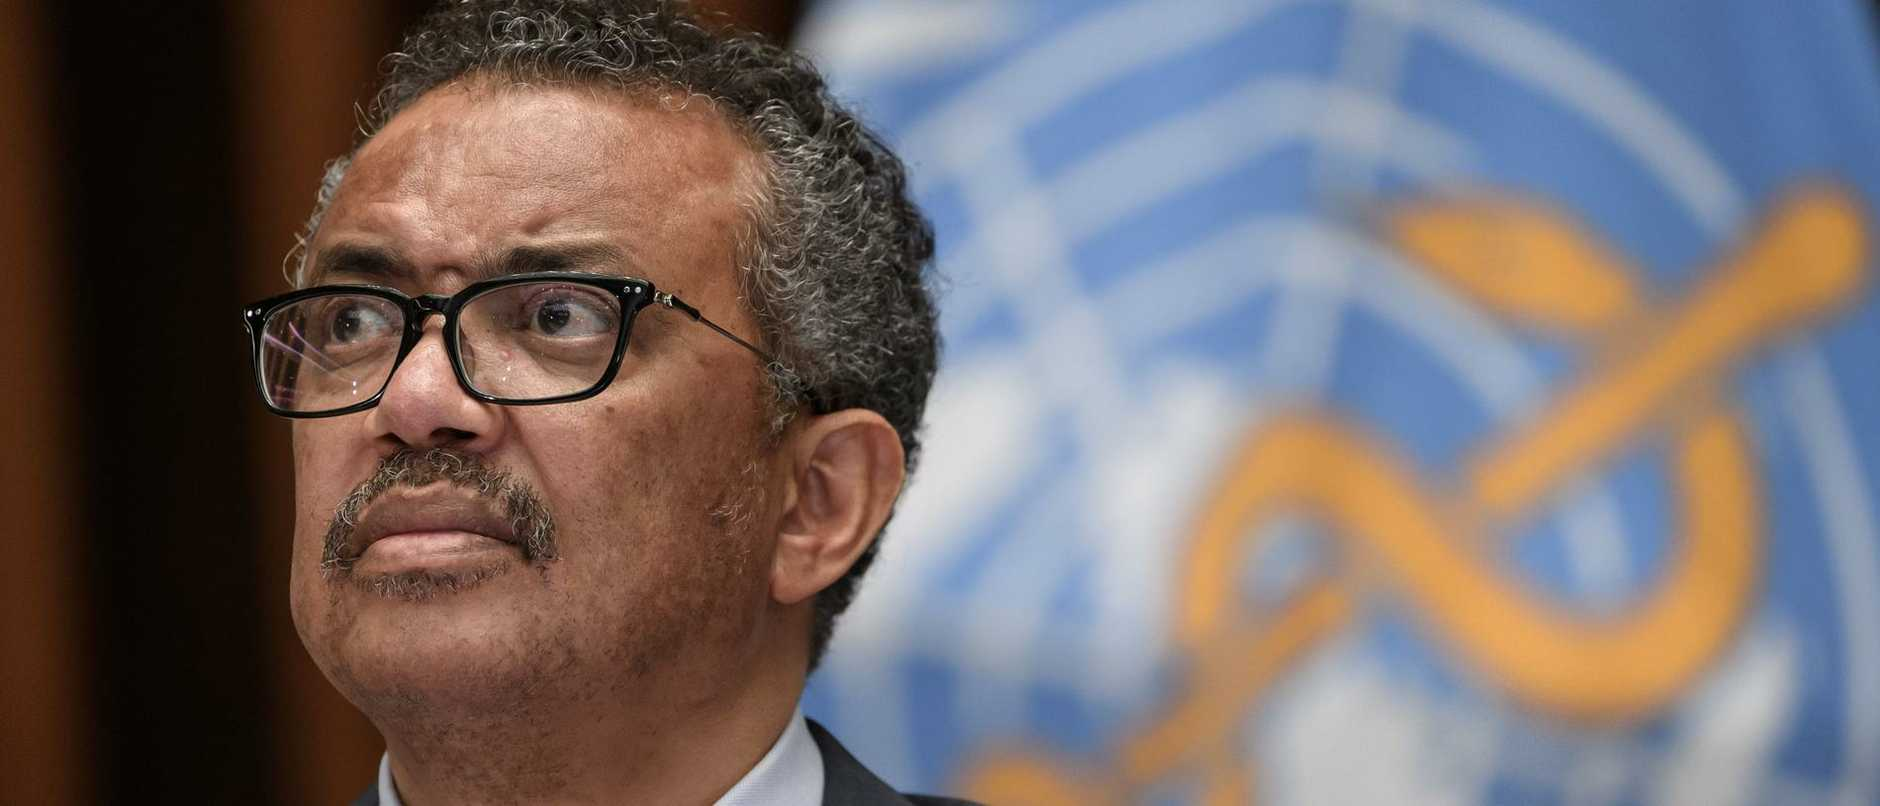 As global coronavirus cases near 12 million, the virus is accelerating out of control and getting worse, the WHO chief has warned.